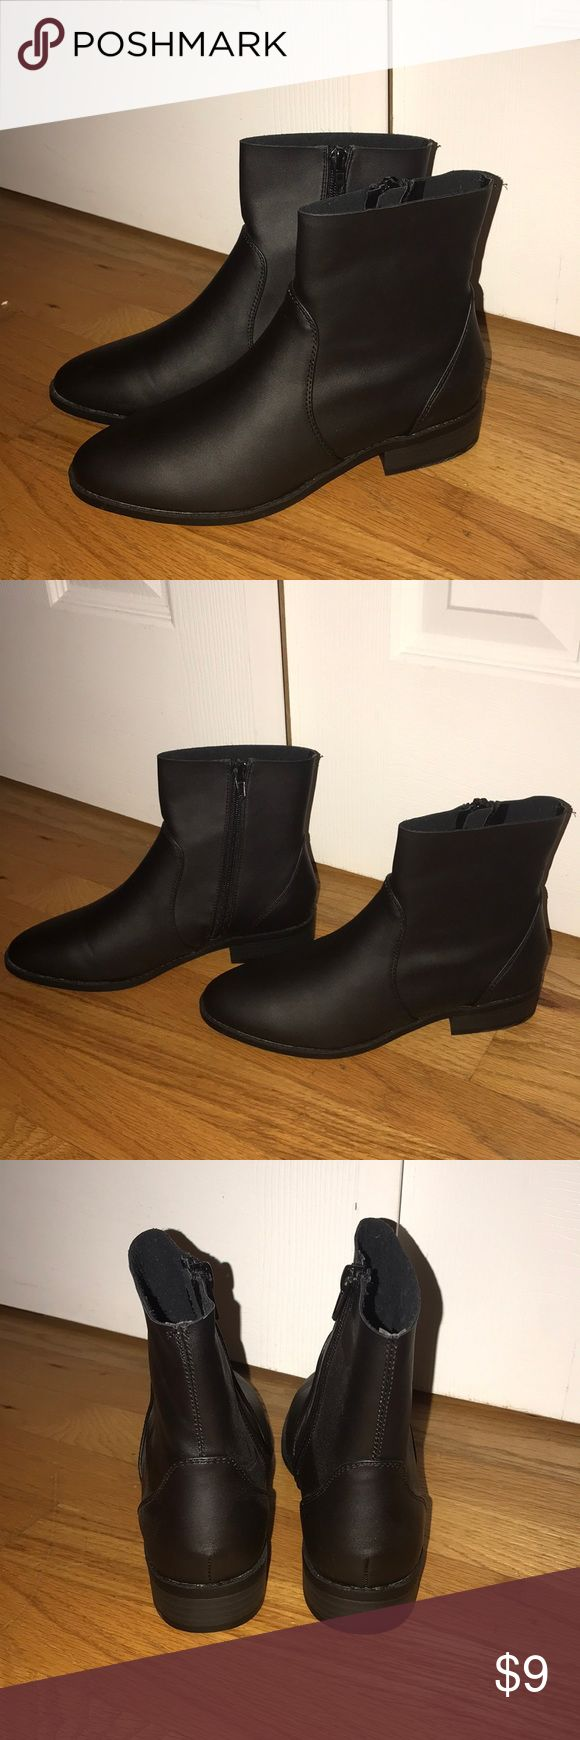 Black faux leather ankle boot Never worn, brand new. Primark Shoes Ankle Boots & Booties